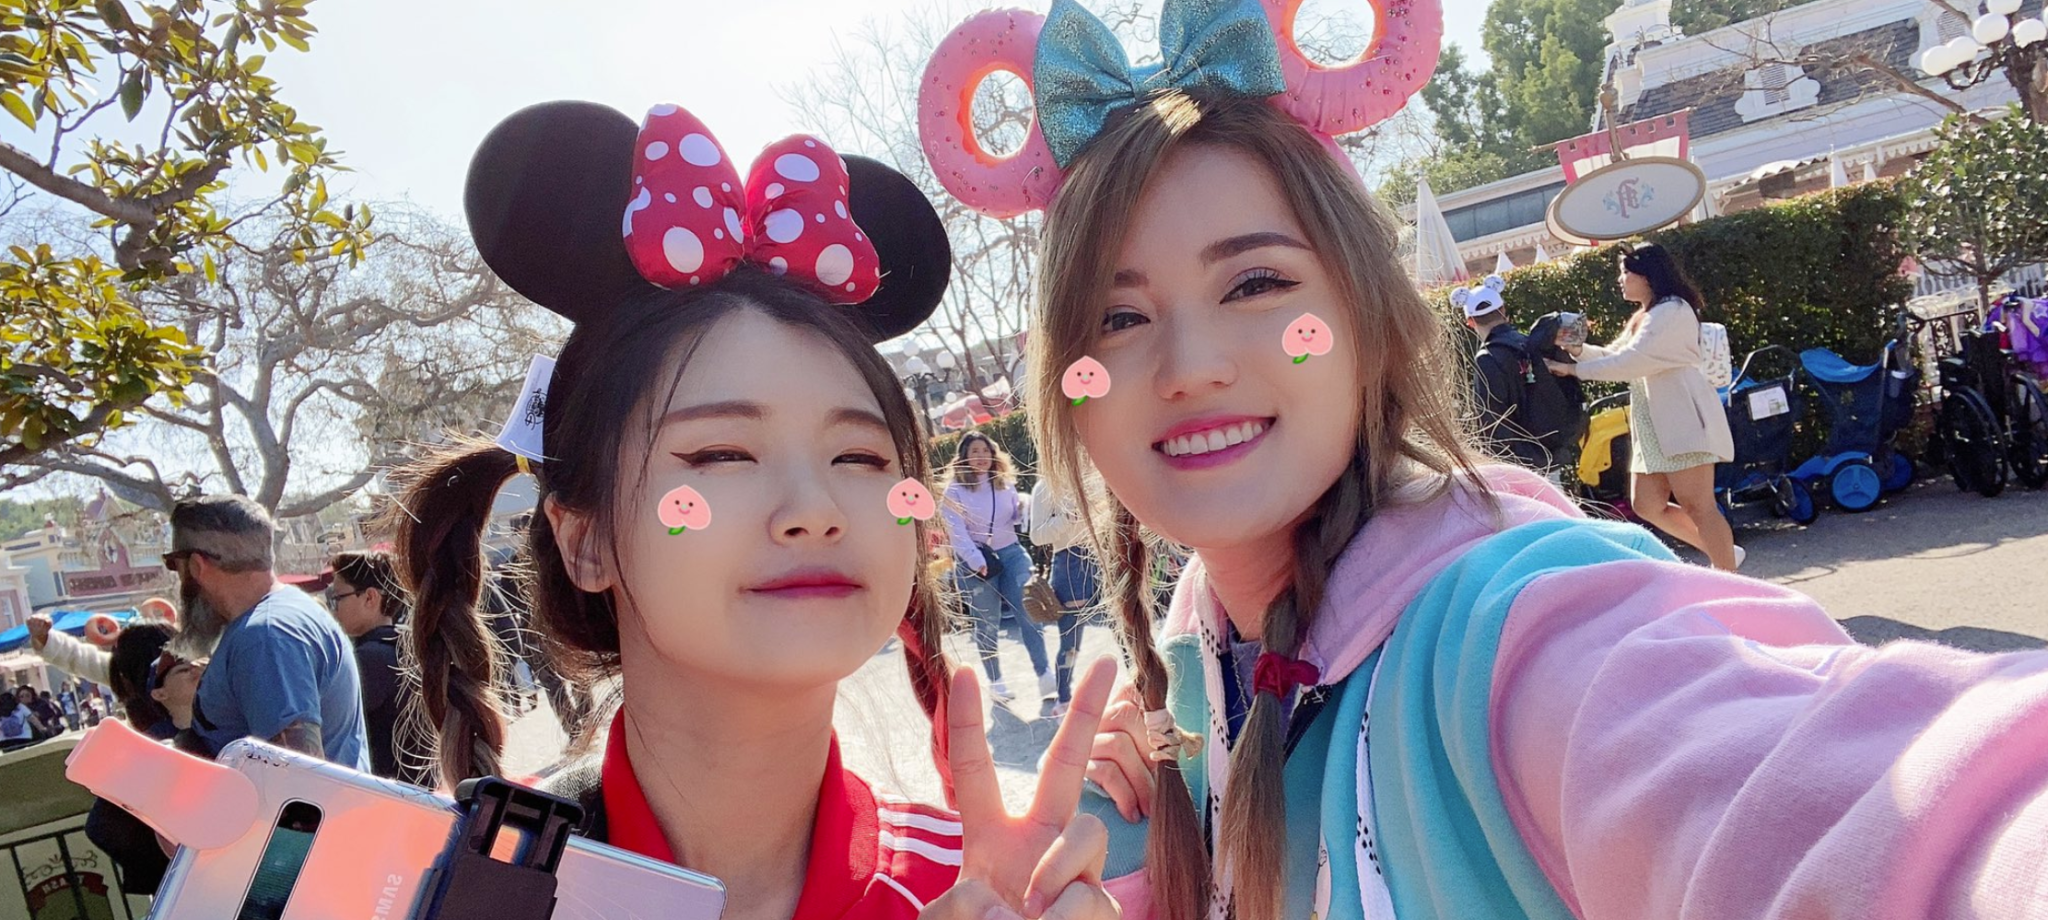 HAchubby visited Disneyland with Angelskimi.